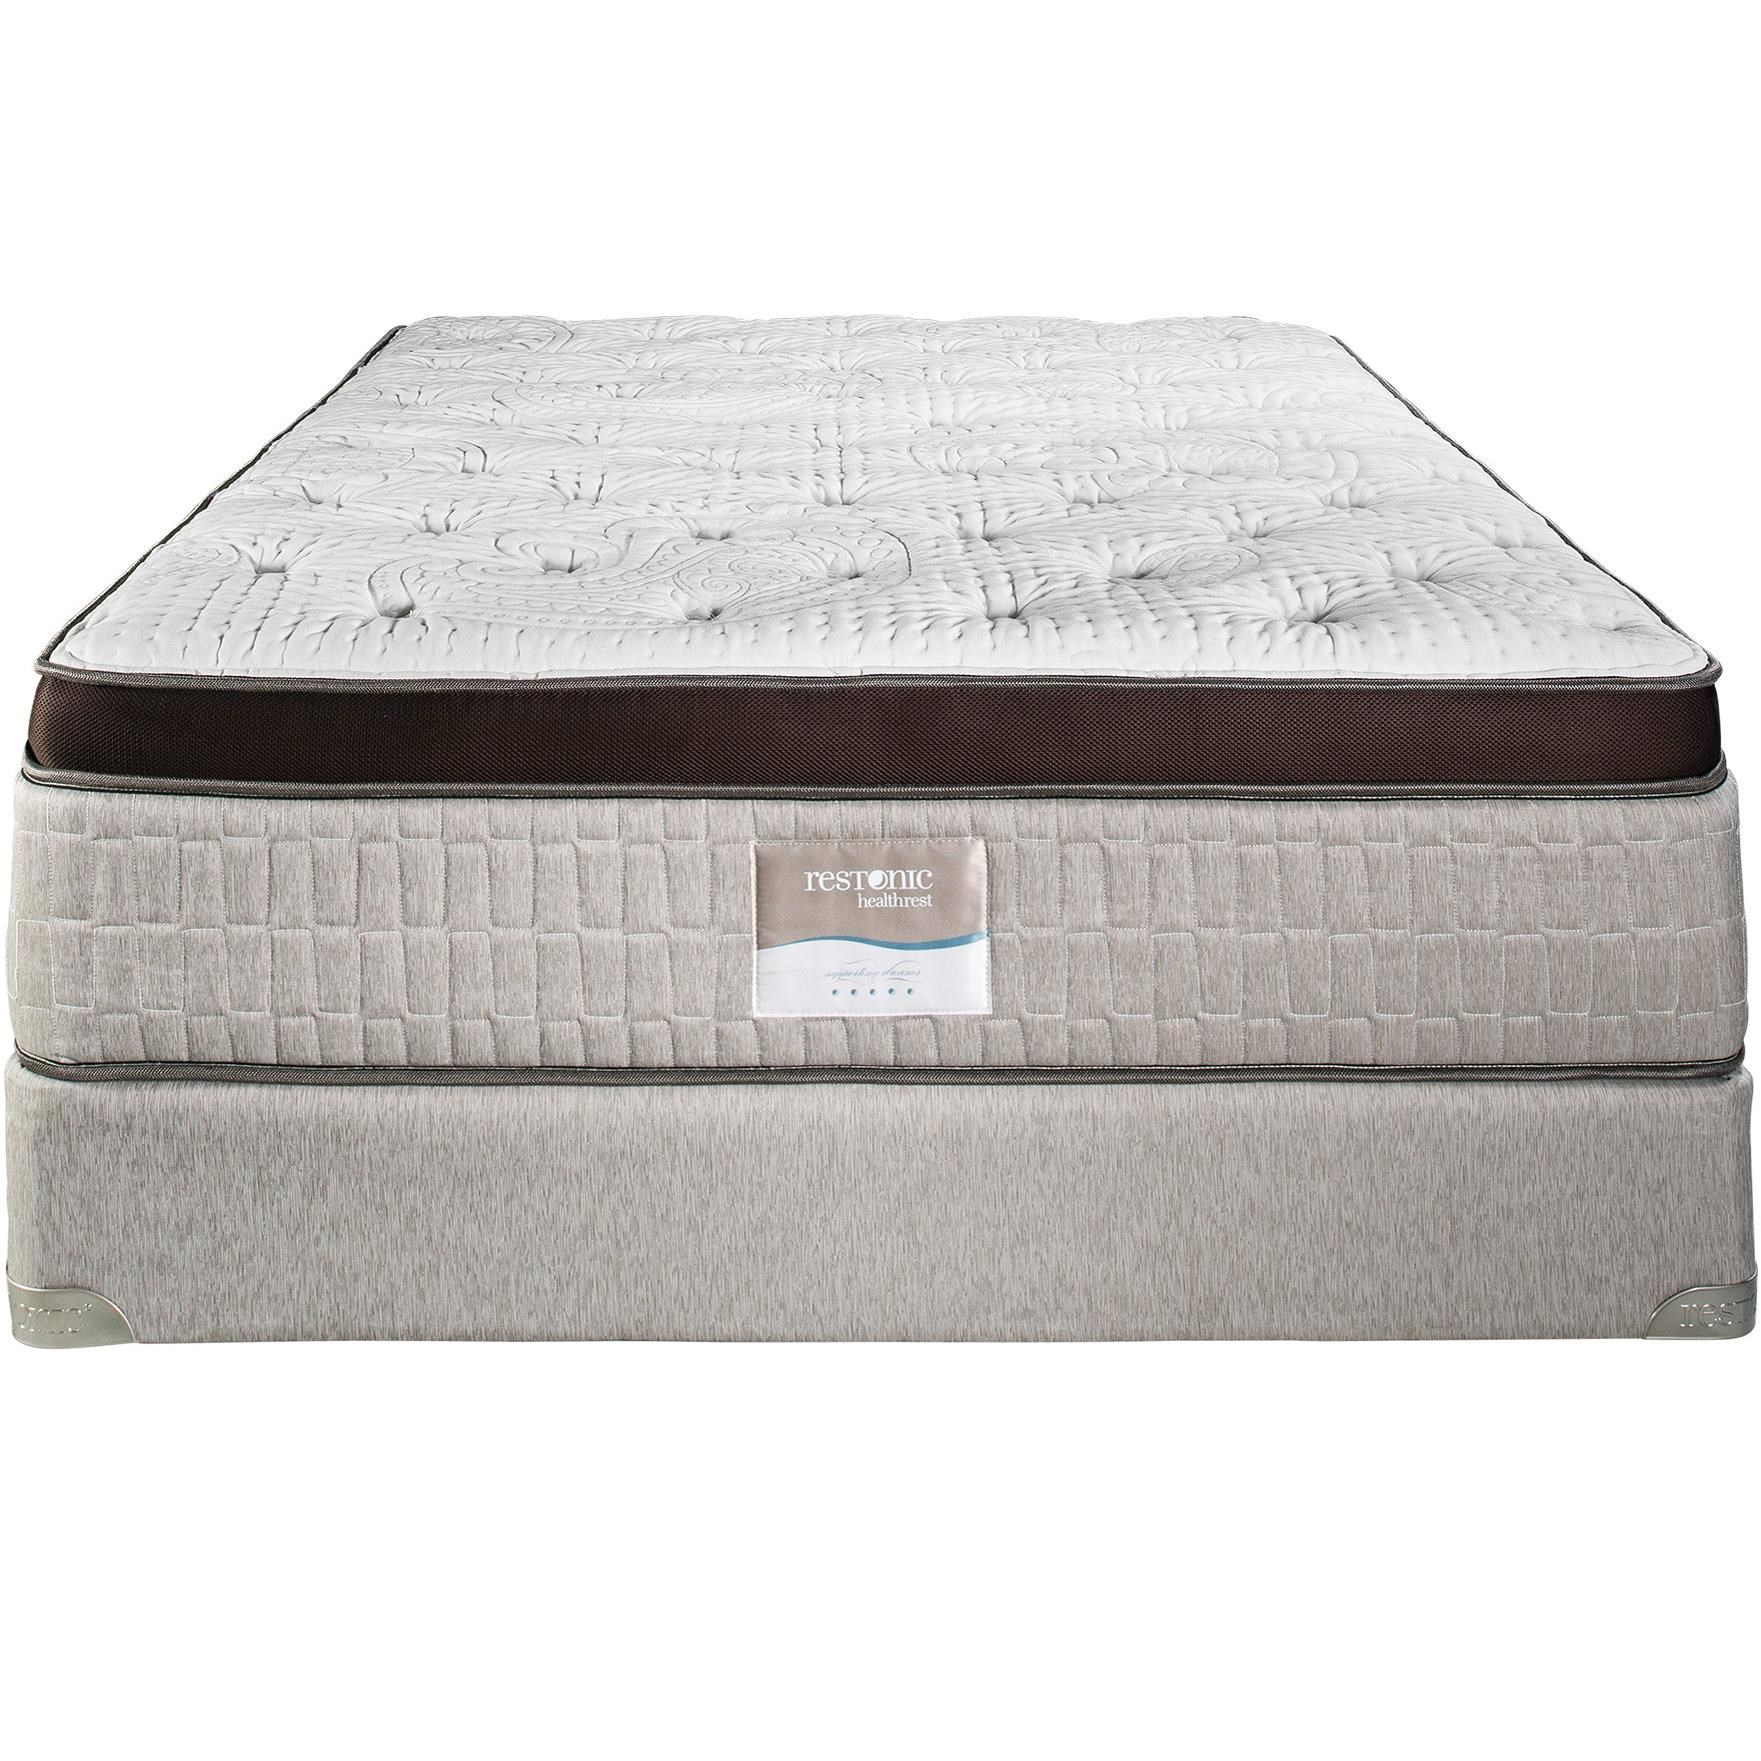 Restonic Vienna Full Eurotop Firm Mattress